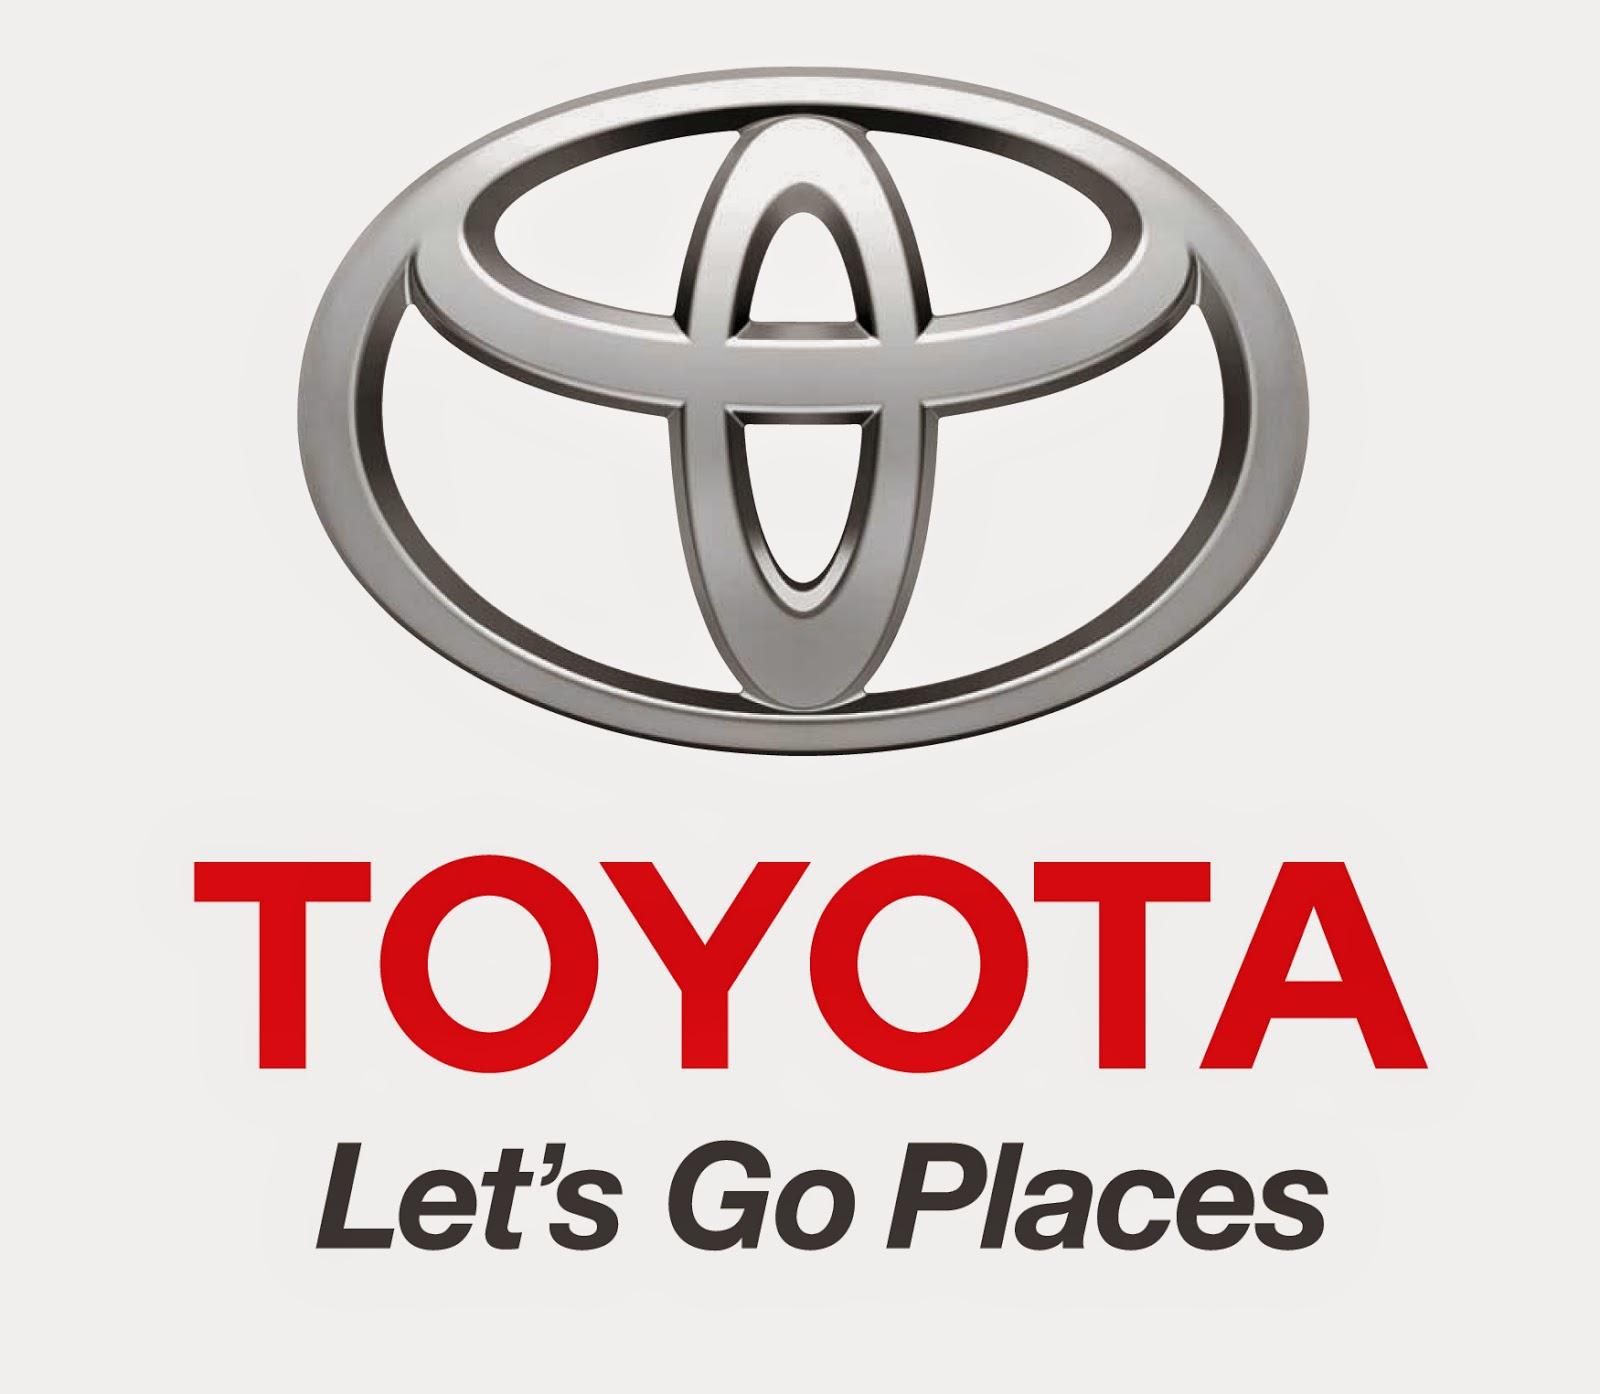 Hoselton Toyota - Your #1 Rochester, NY Toyota Dealer